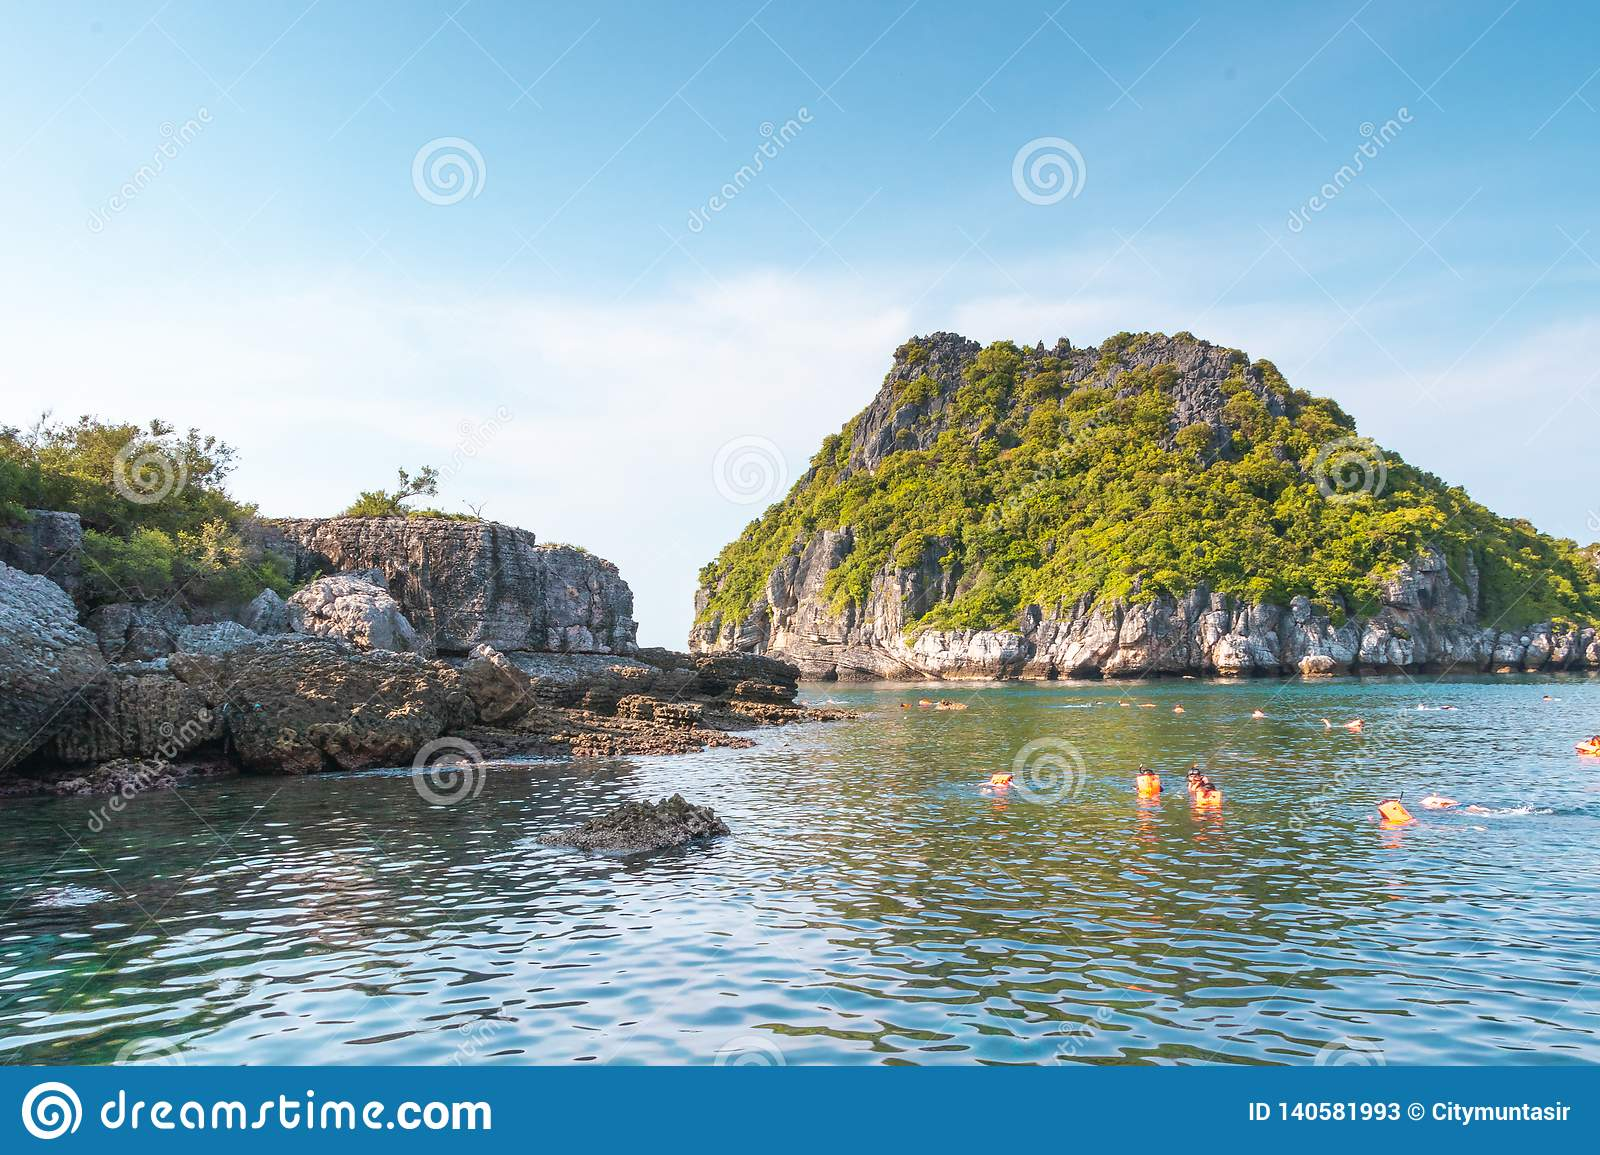 Beautiful Rocks with vegetation and Swimmers are swimming in the sea underneath blue sky